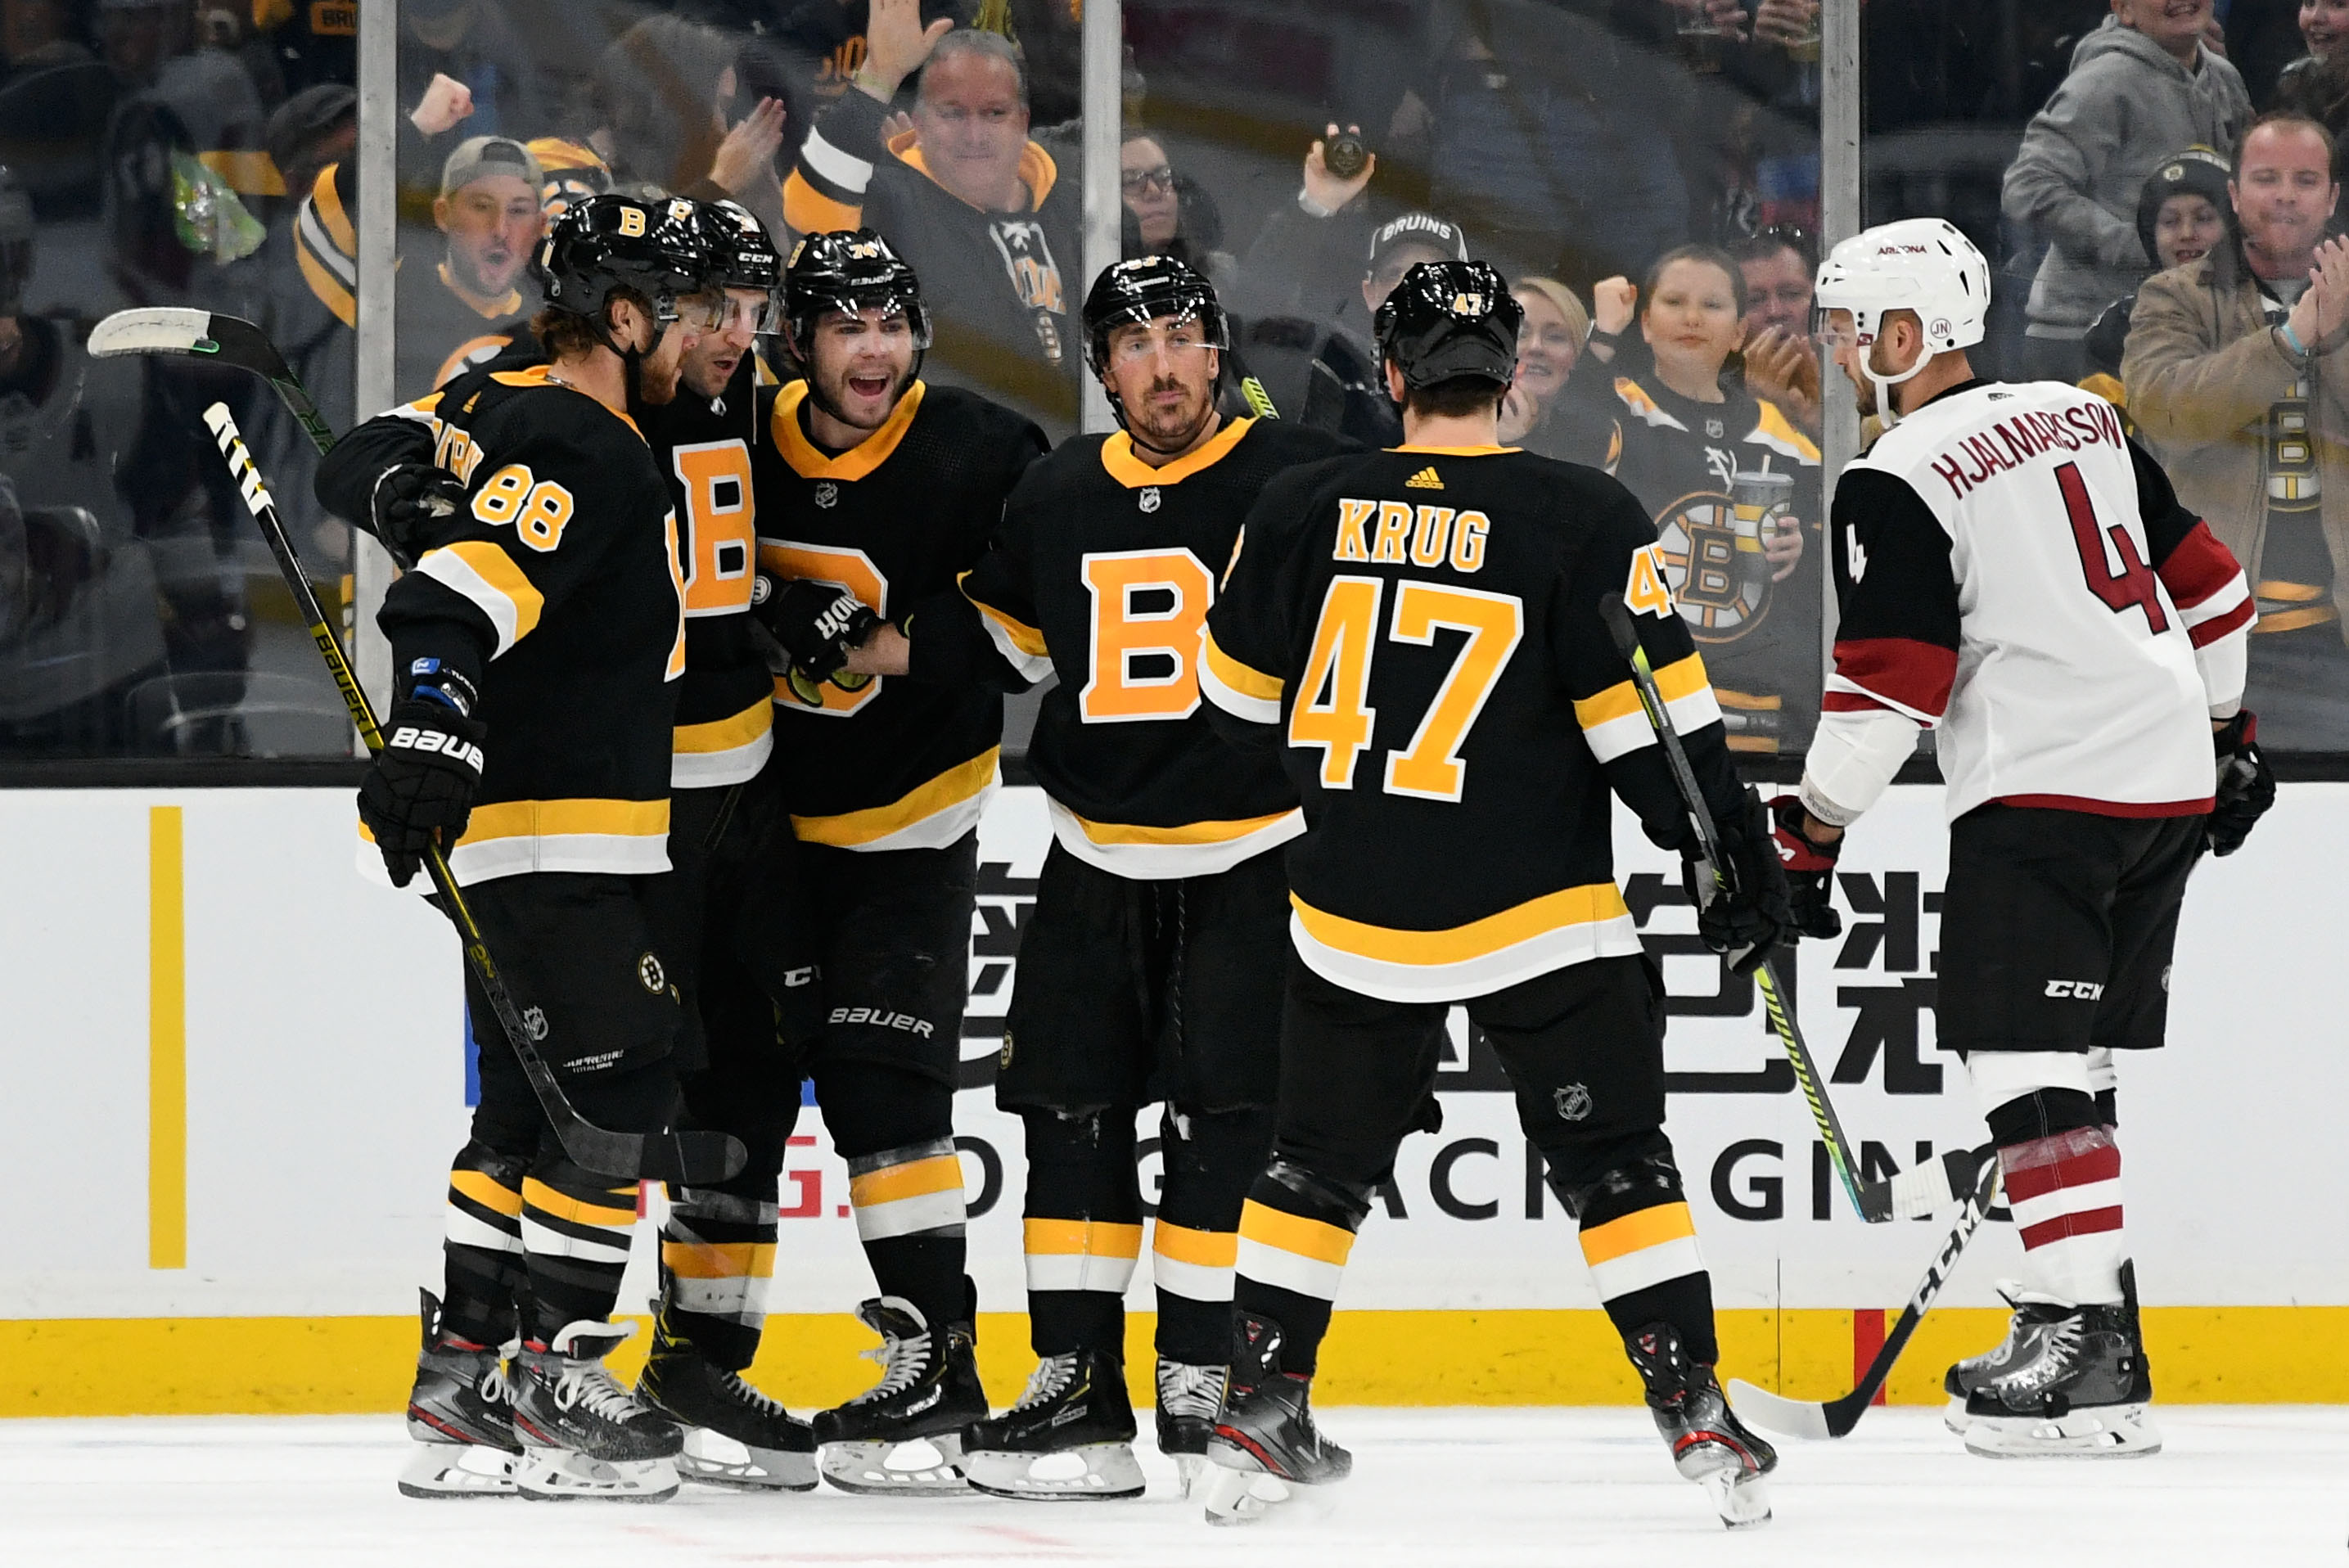 Boston Bruins center Patrice Bergeron celebrates with right wing David Pastrnak, left wing Brad Marchand, left wing Jake DeBrusk, and defenseman Torey Krug after scoring against the Arizona Coyotes during the second period at the TD Garden.